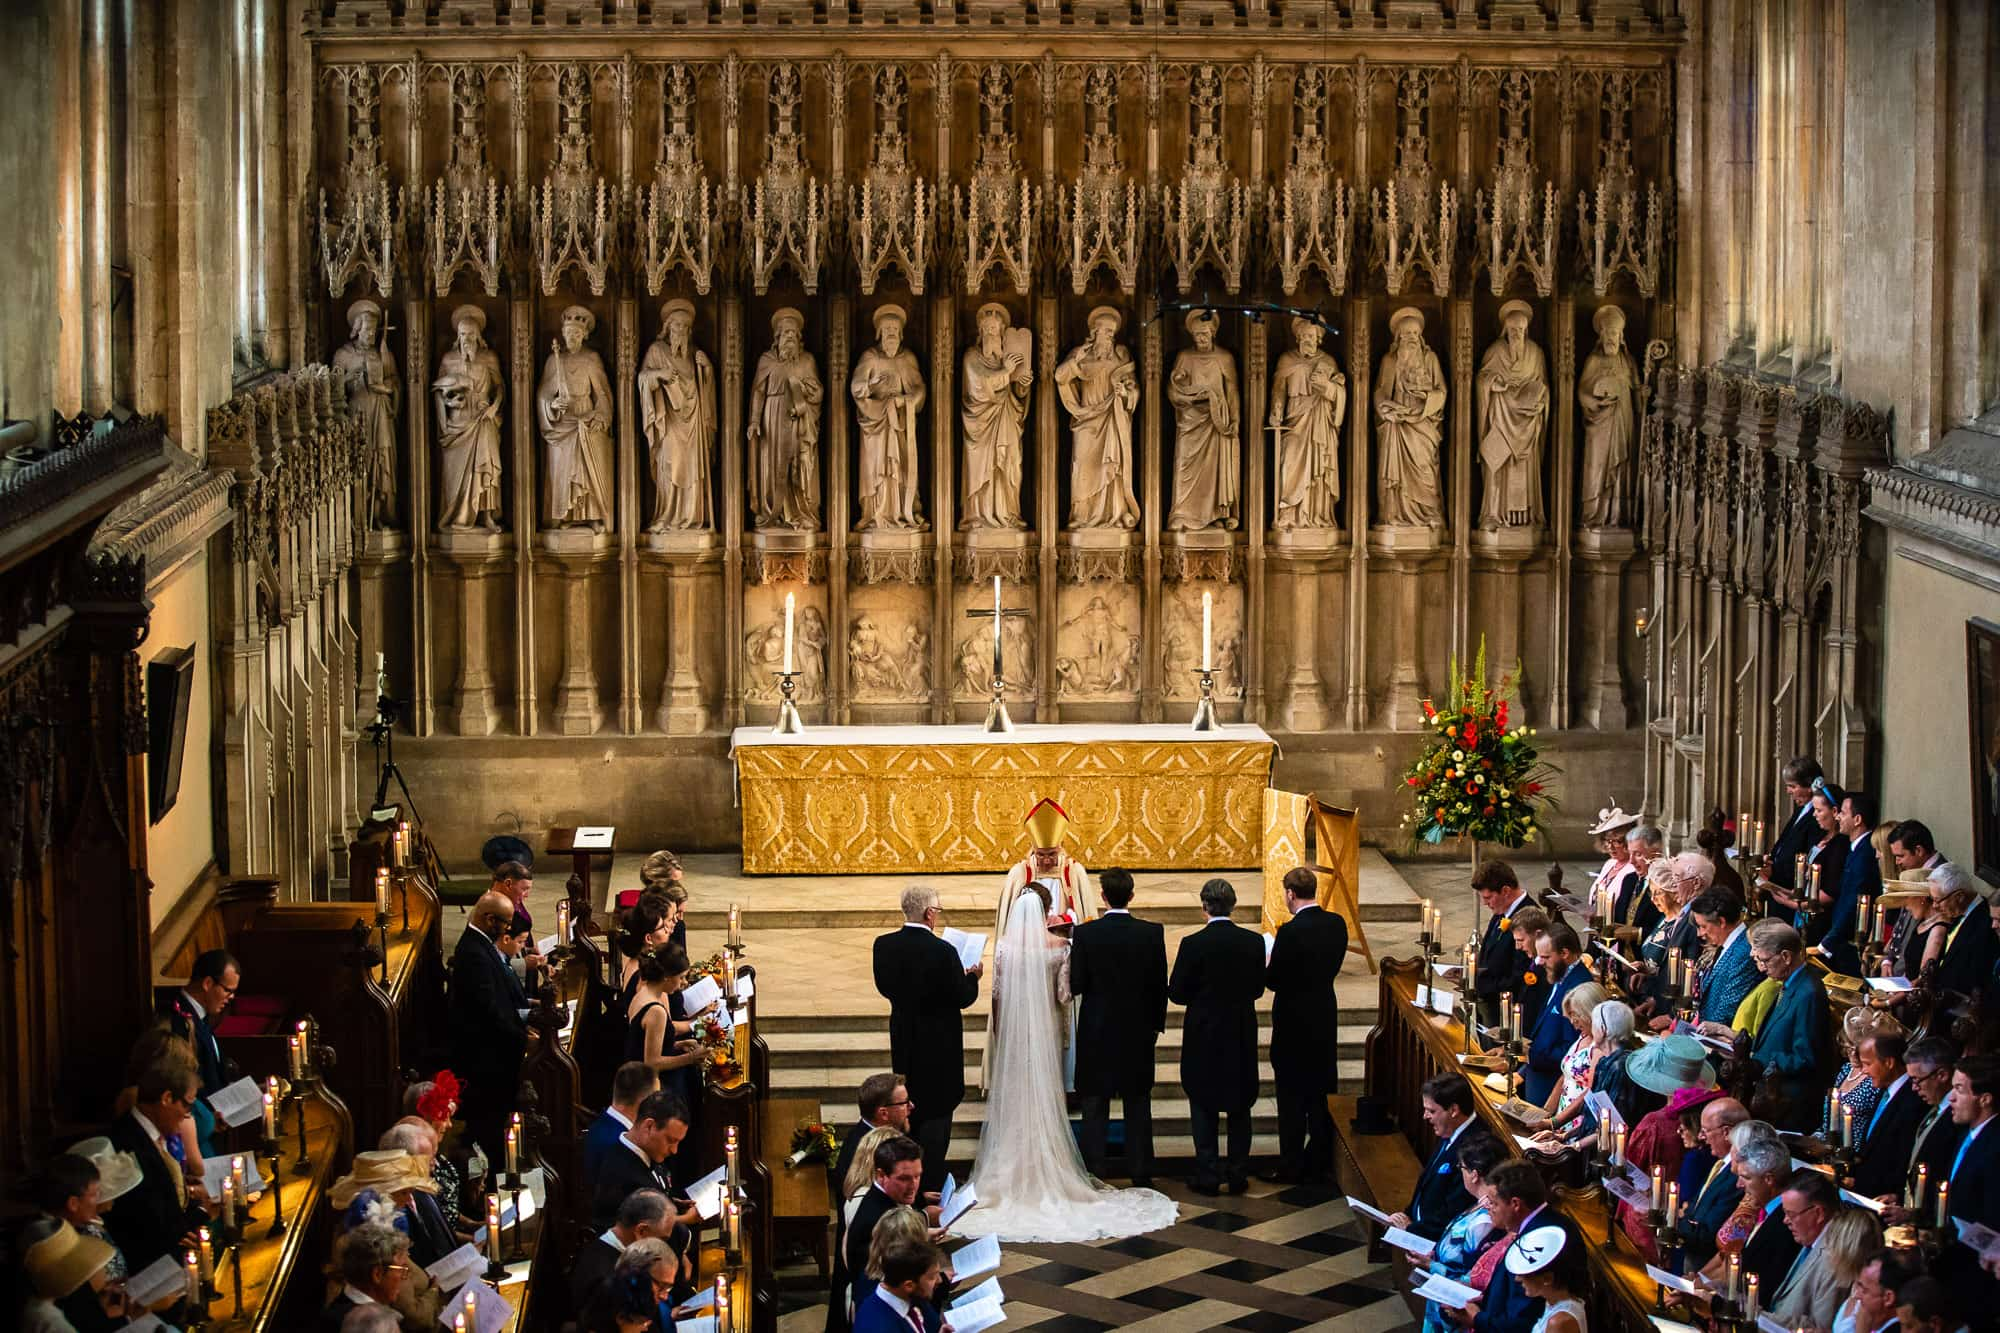 New College Chapel Oxford Wedding Photography - Wedding Ceremony from the back of the chapel